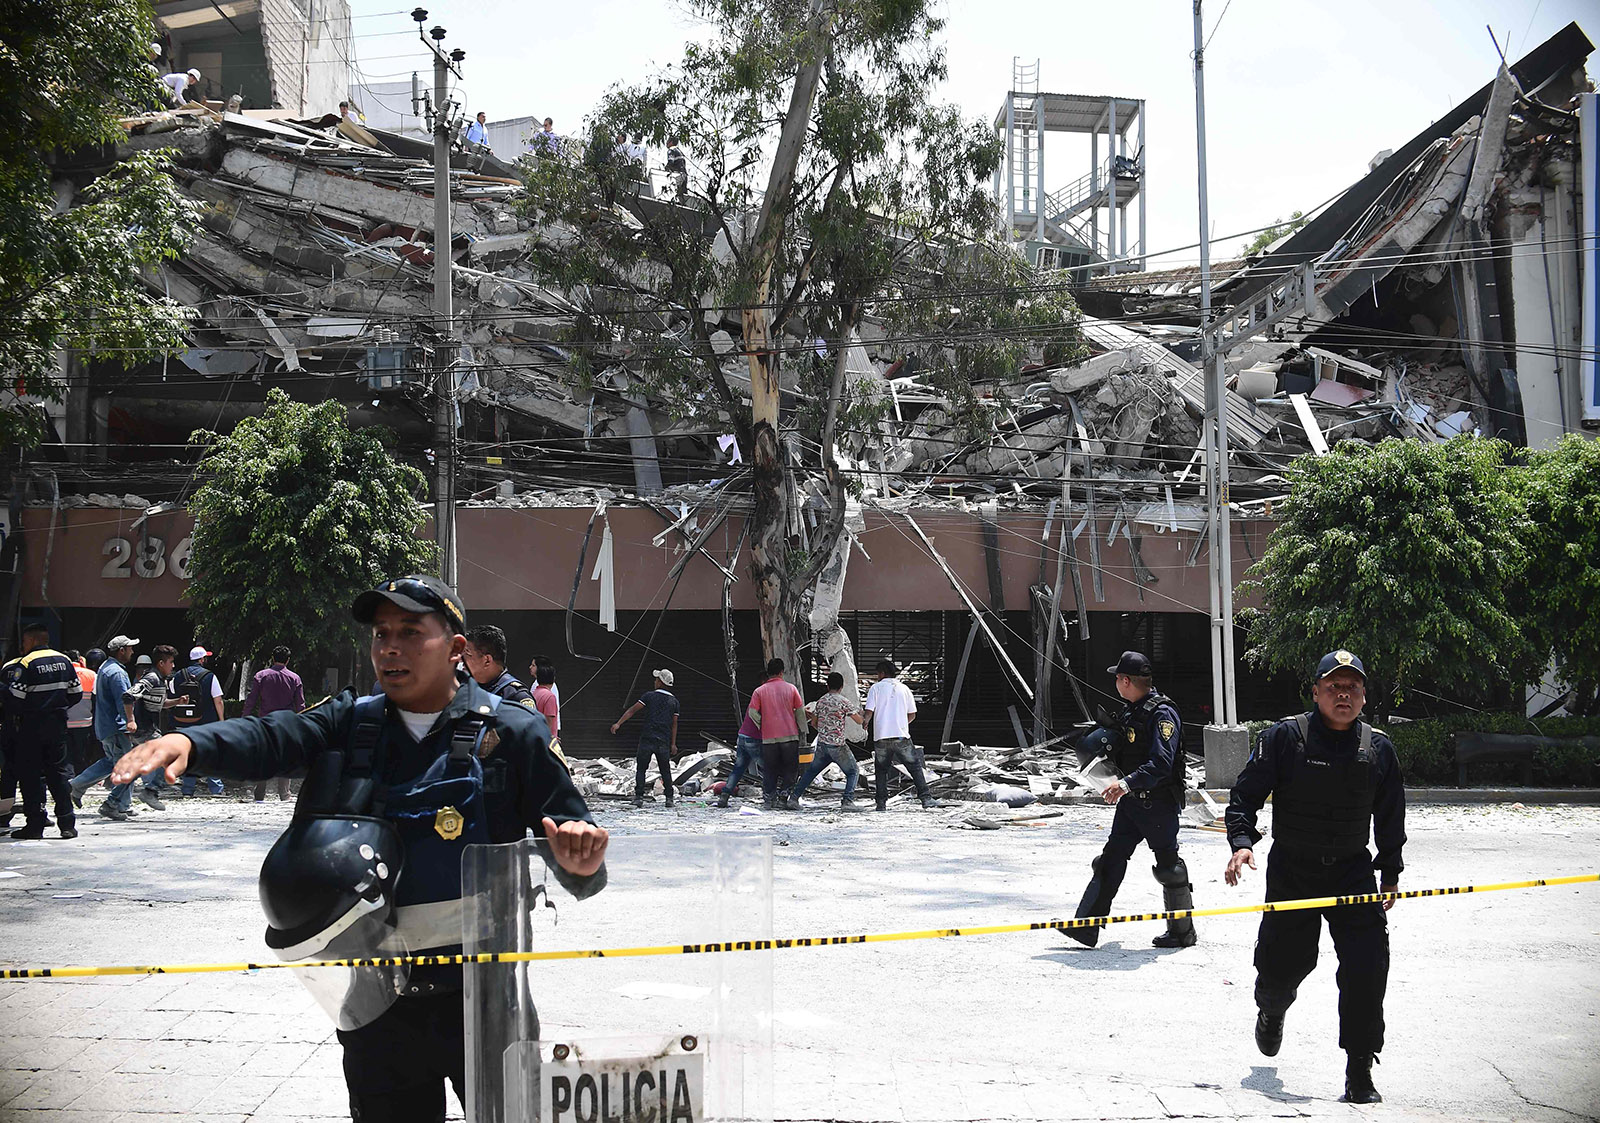 Police officers cordon the area off after a building collapsed during a quake in Mexico City on September 19, 2017. (AFP Photo)